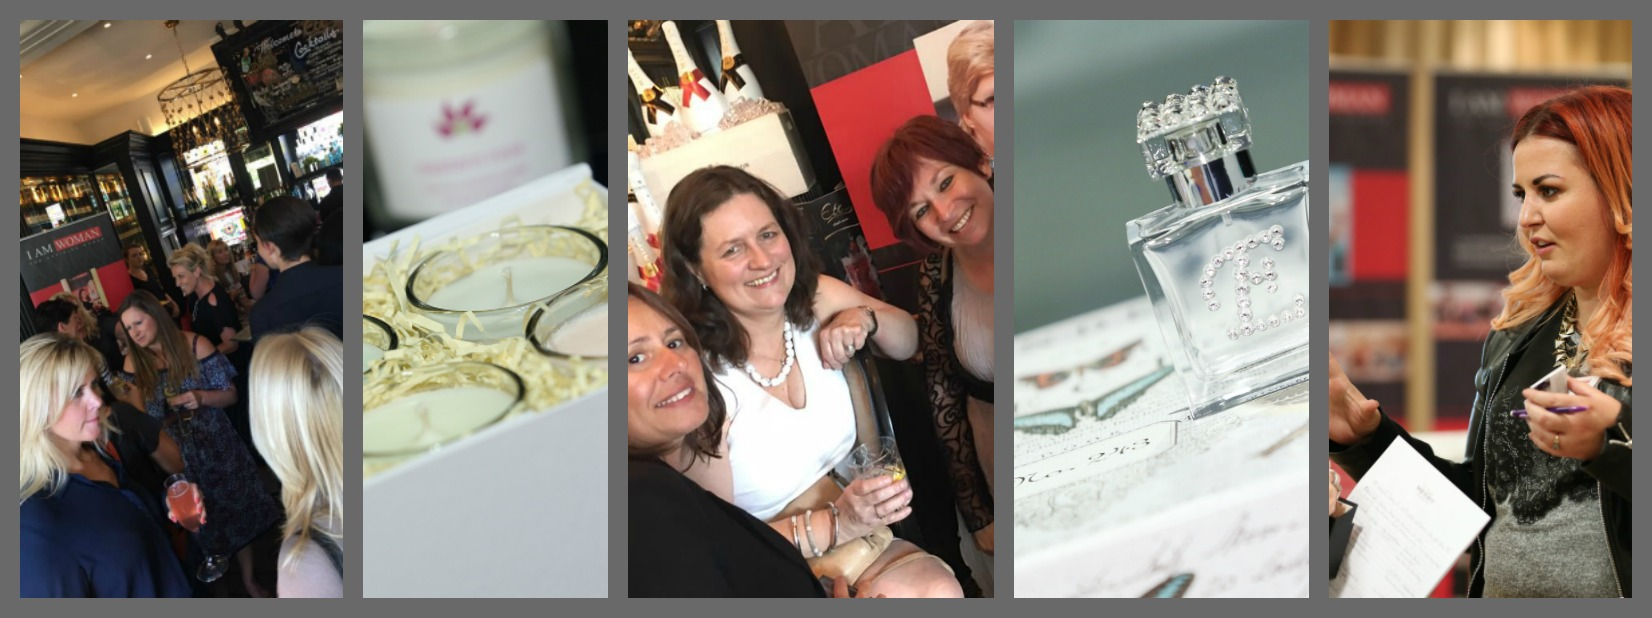 networking collage x 5